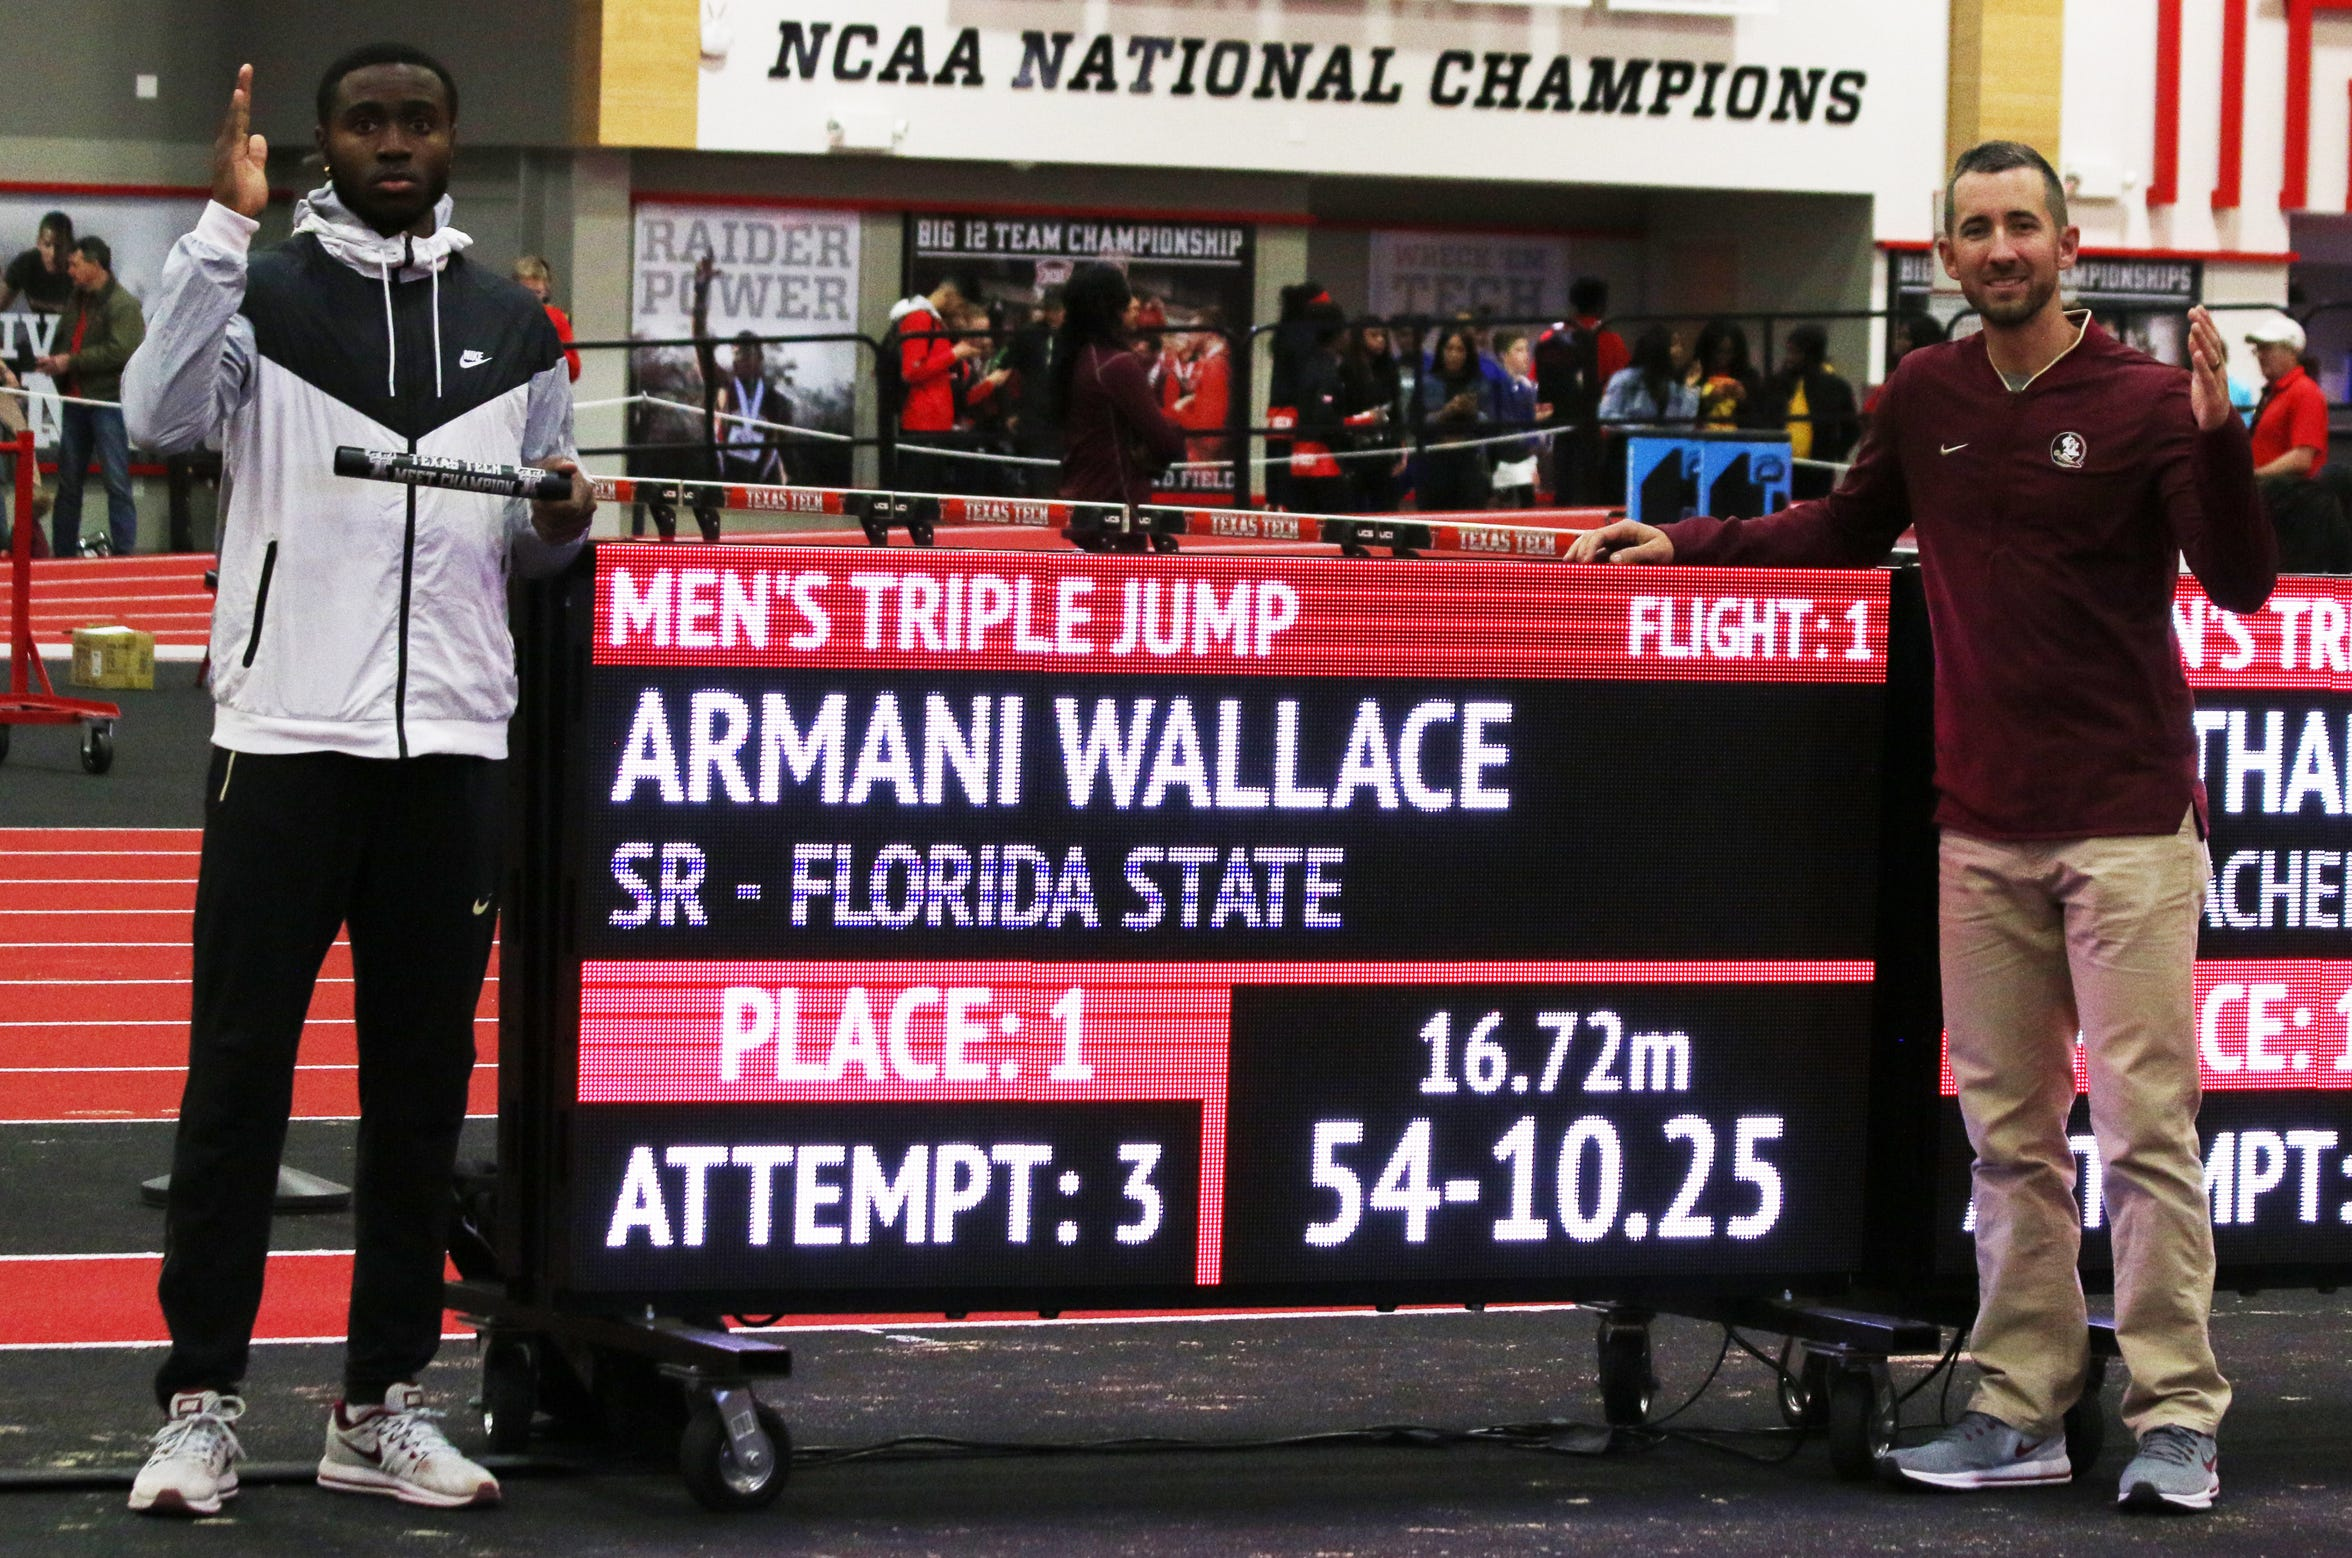 Armani Wallace's jump of 16.72 meters at the Texas Tech Sports Performance Center two weeks ago left his mark on one of the most storied programs in the country.